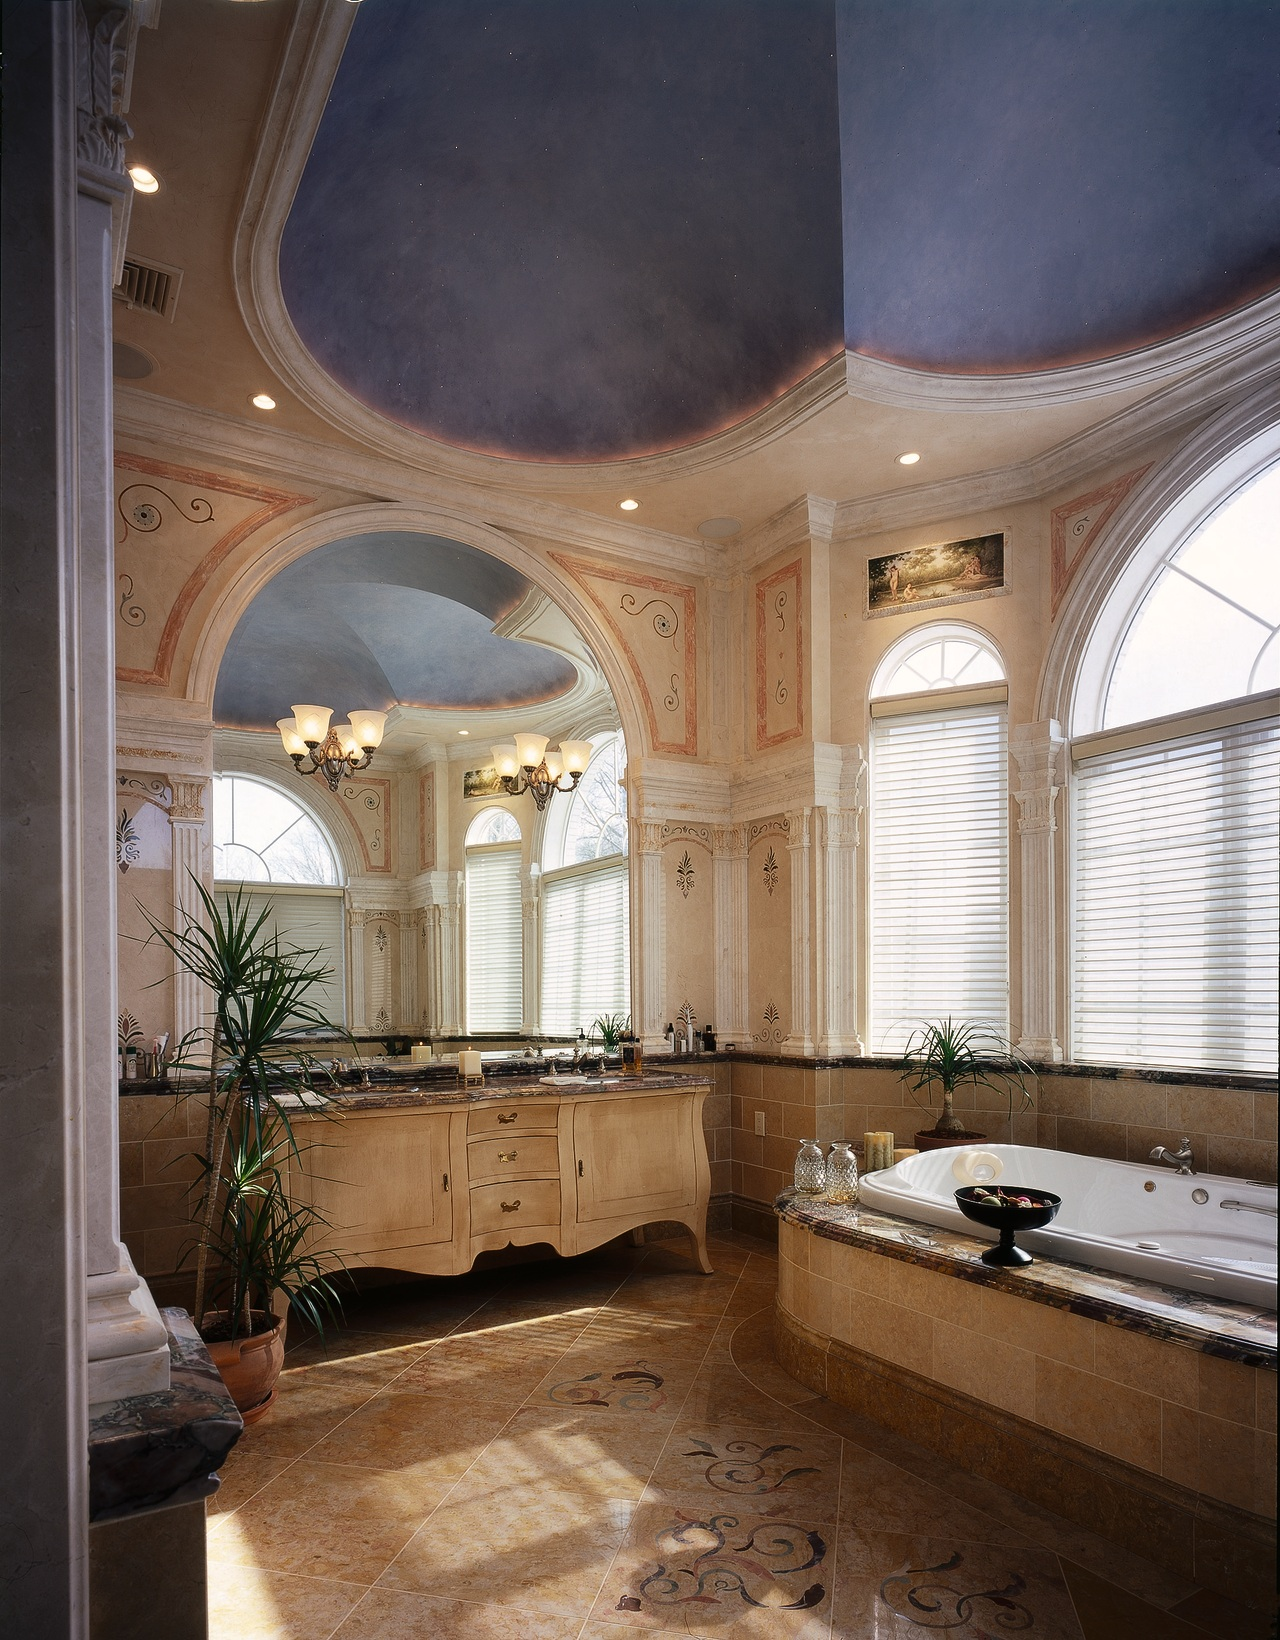 Broad view of this luxury bathroom bathroom, ceiling, daylighting, estate, home, interior design, room, window, brown